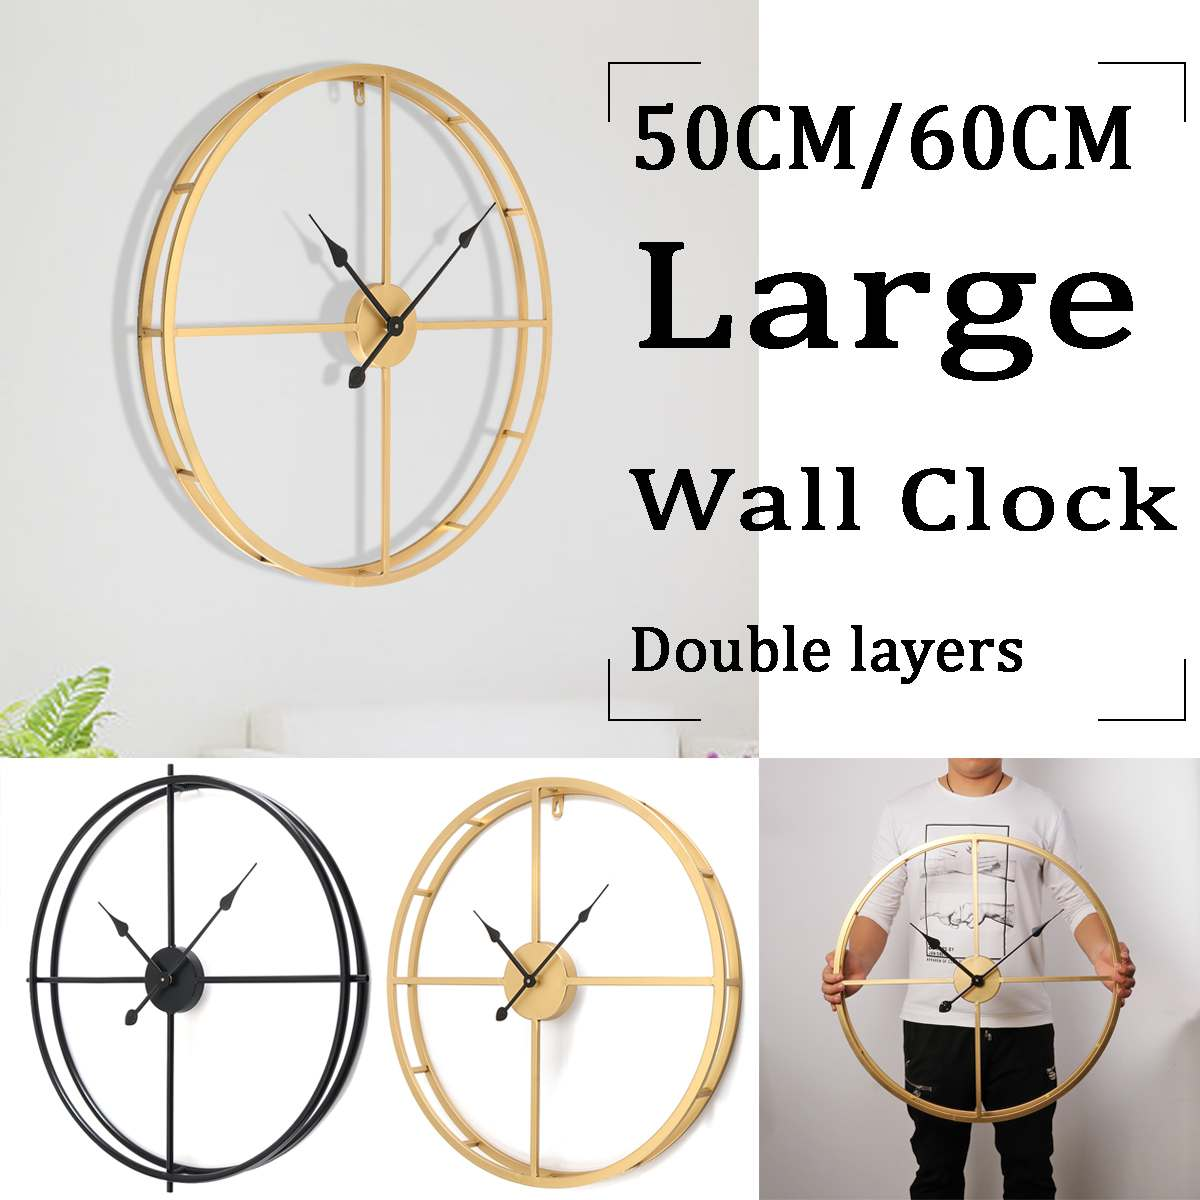 50/60CM Large Country Style Metal Wall Clock Double Layer Iron Frame Mute Watch for Modern Home Livingroom Hotel Decor Gifts